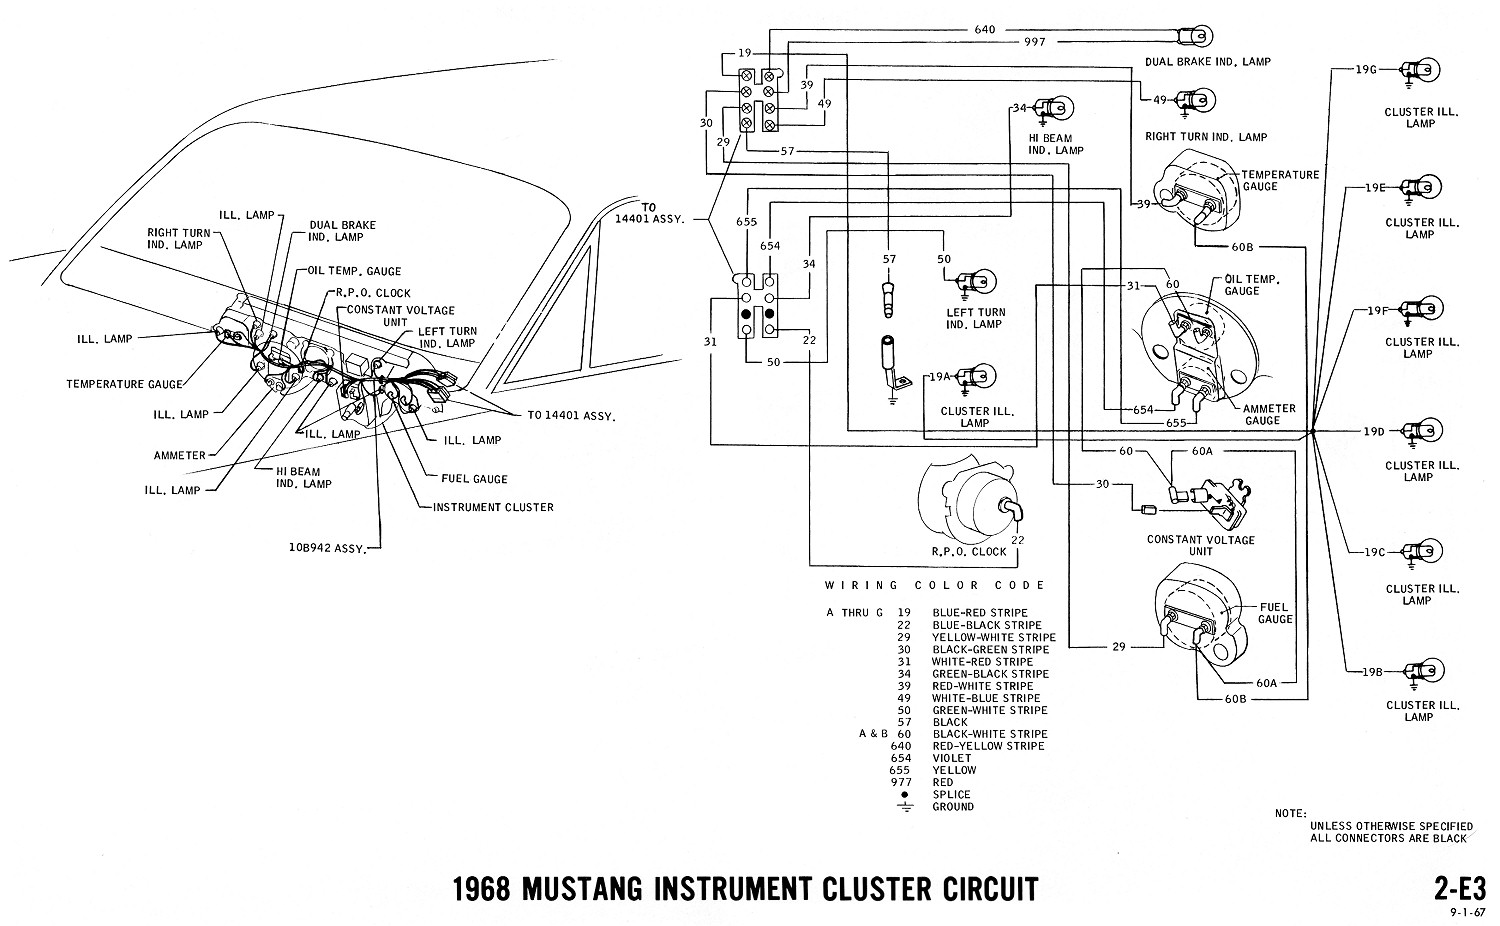 1968 mustang wiring diagrams evolving software rh peterfranza com 1970 Firebird Wiring Diagram 1970 Firebird Wiring Diagram